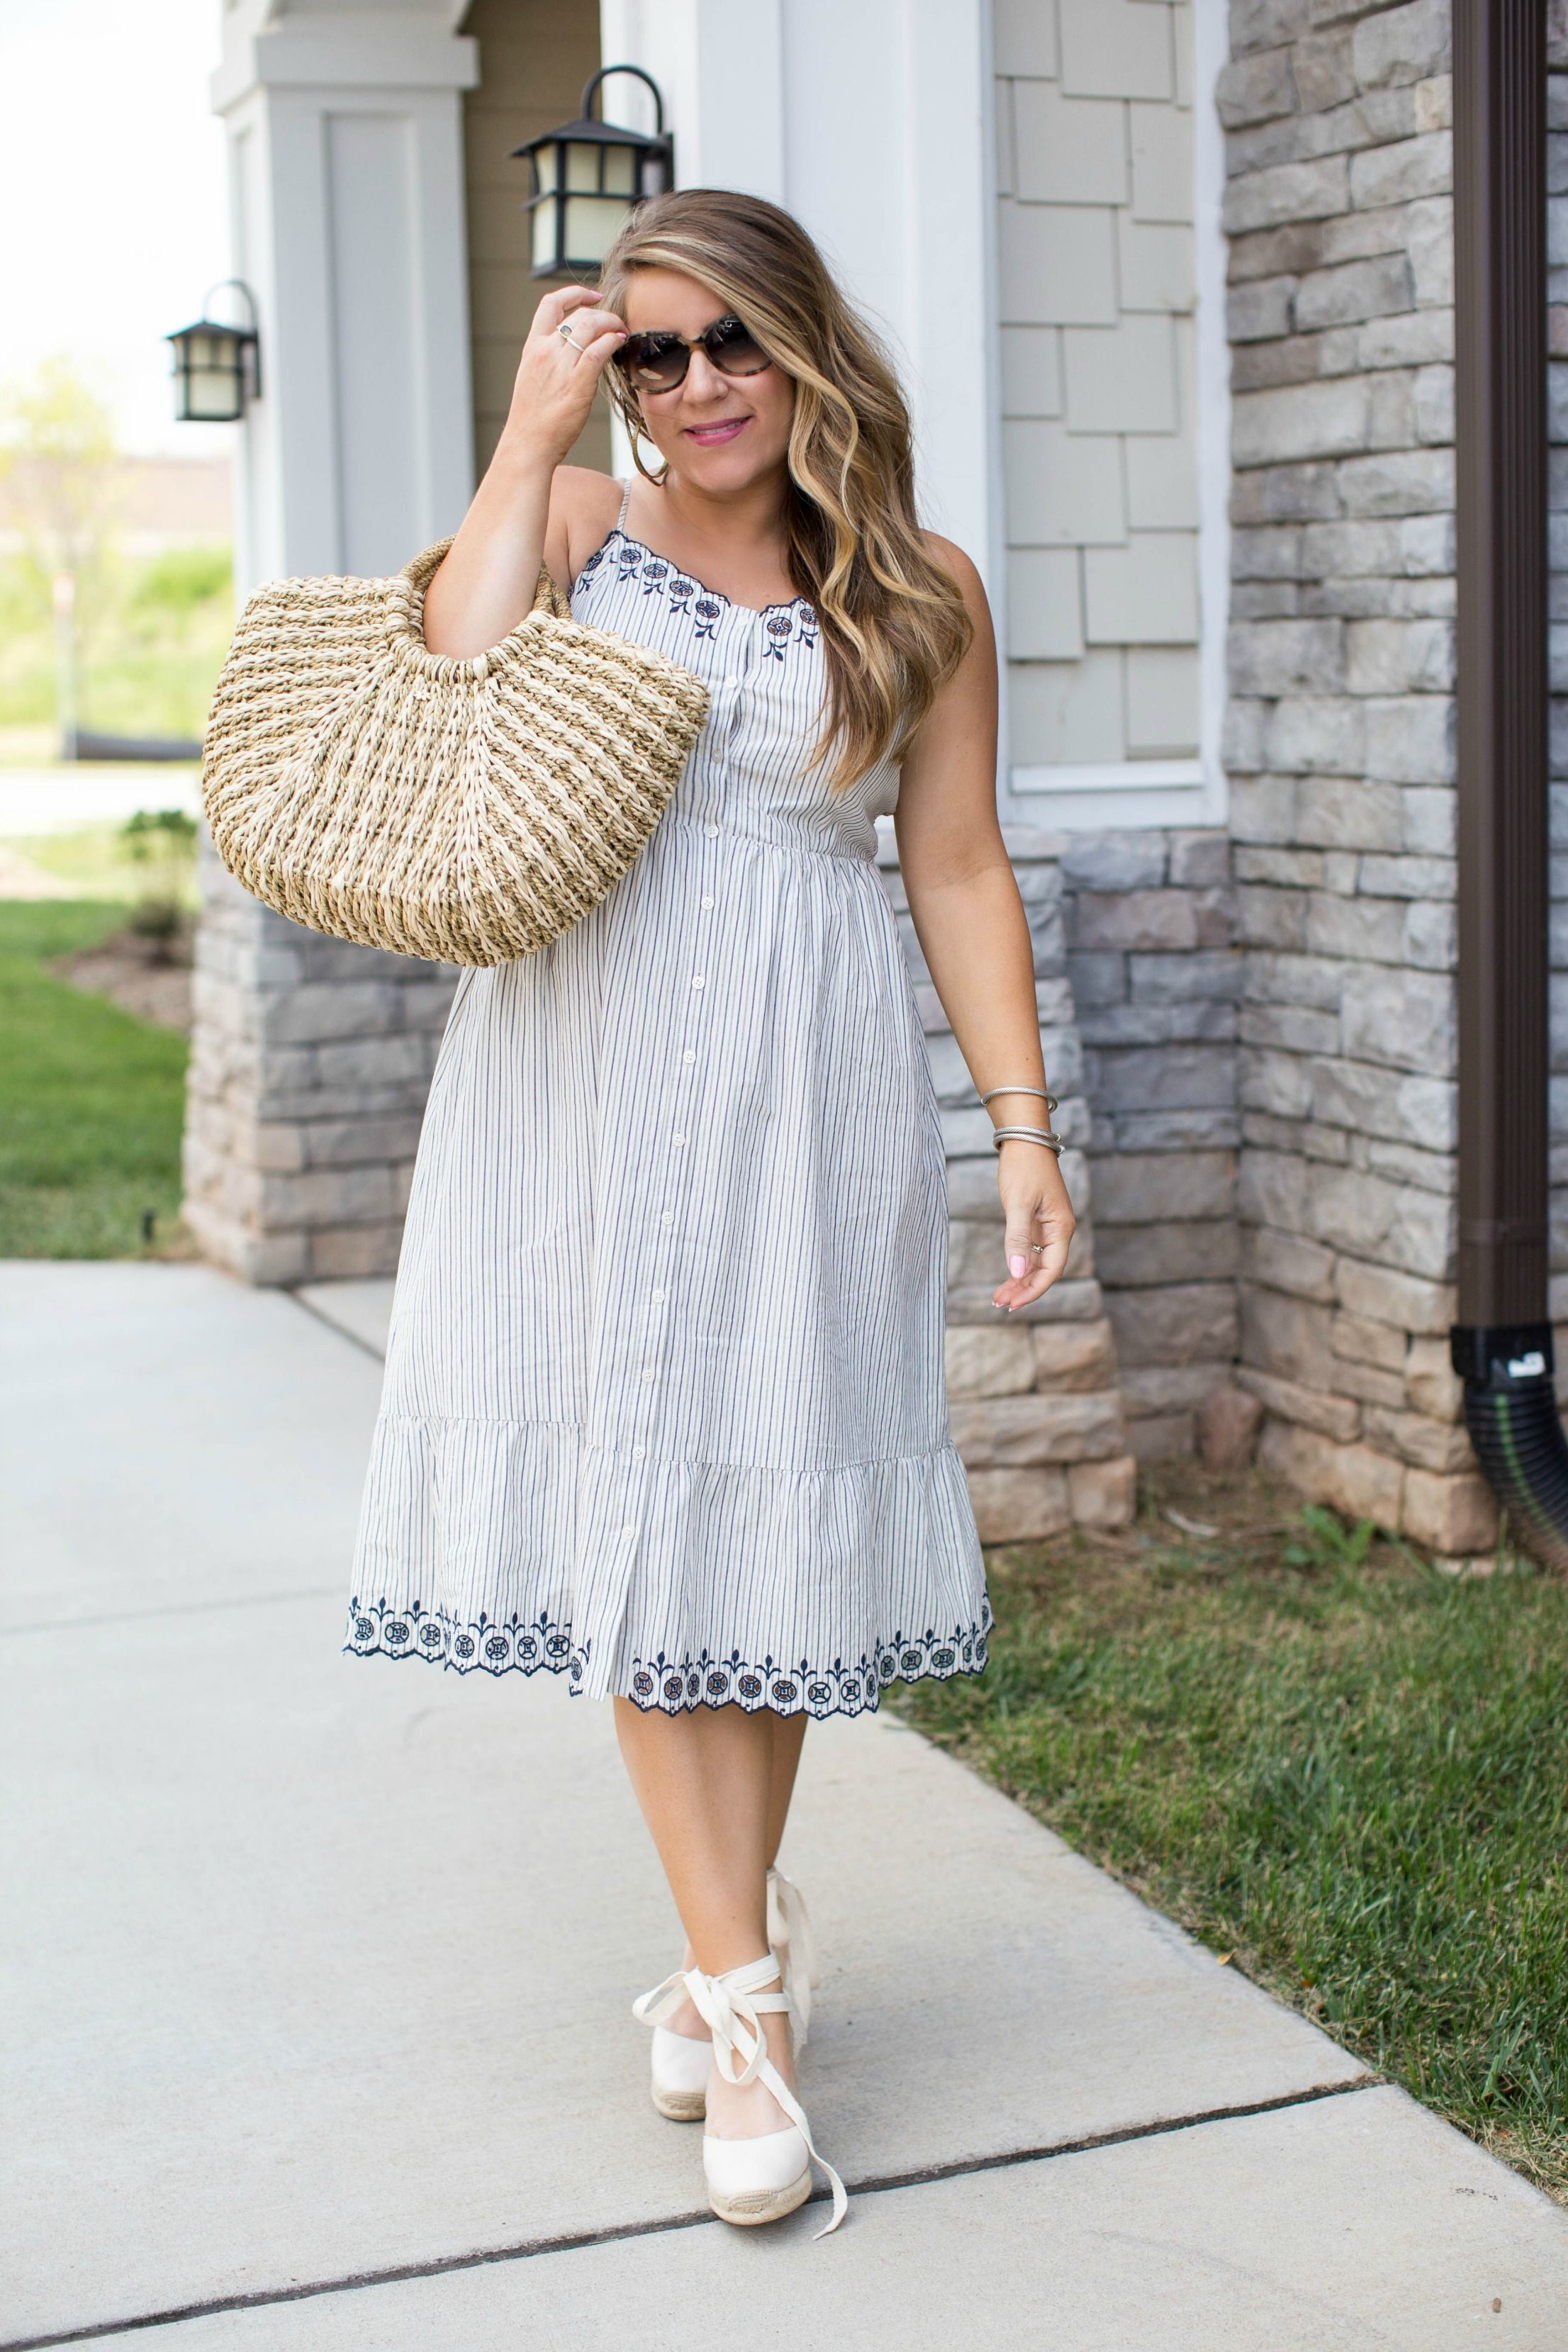 2019 year lifestyle- All outfit white inspiration some style tips